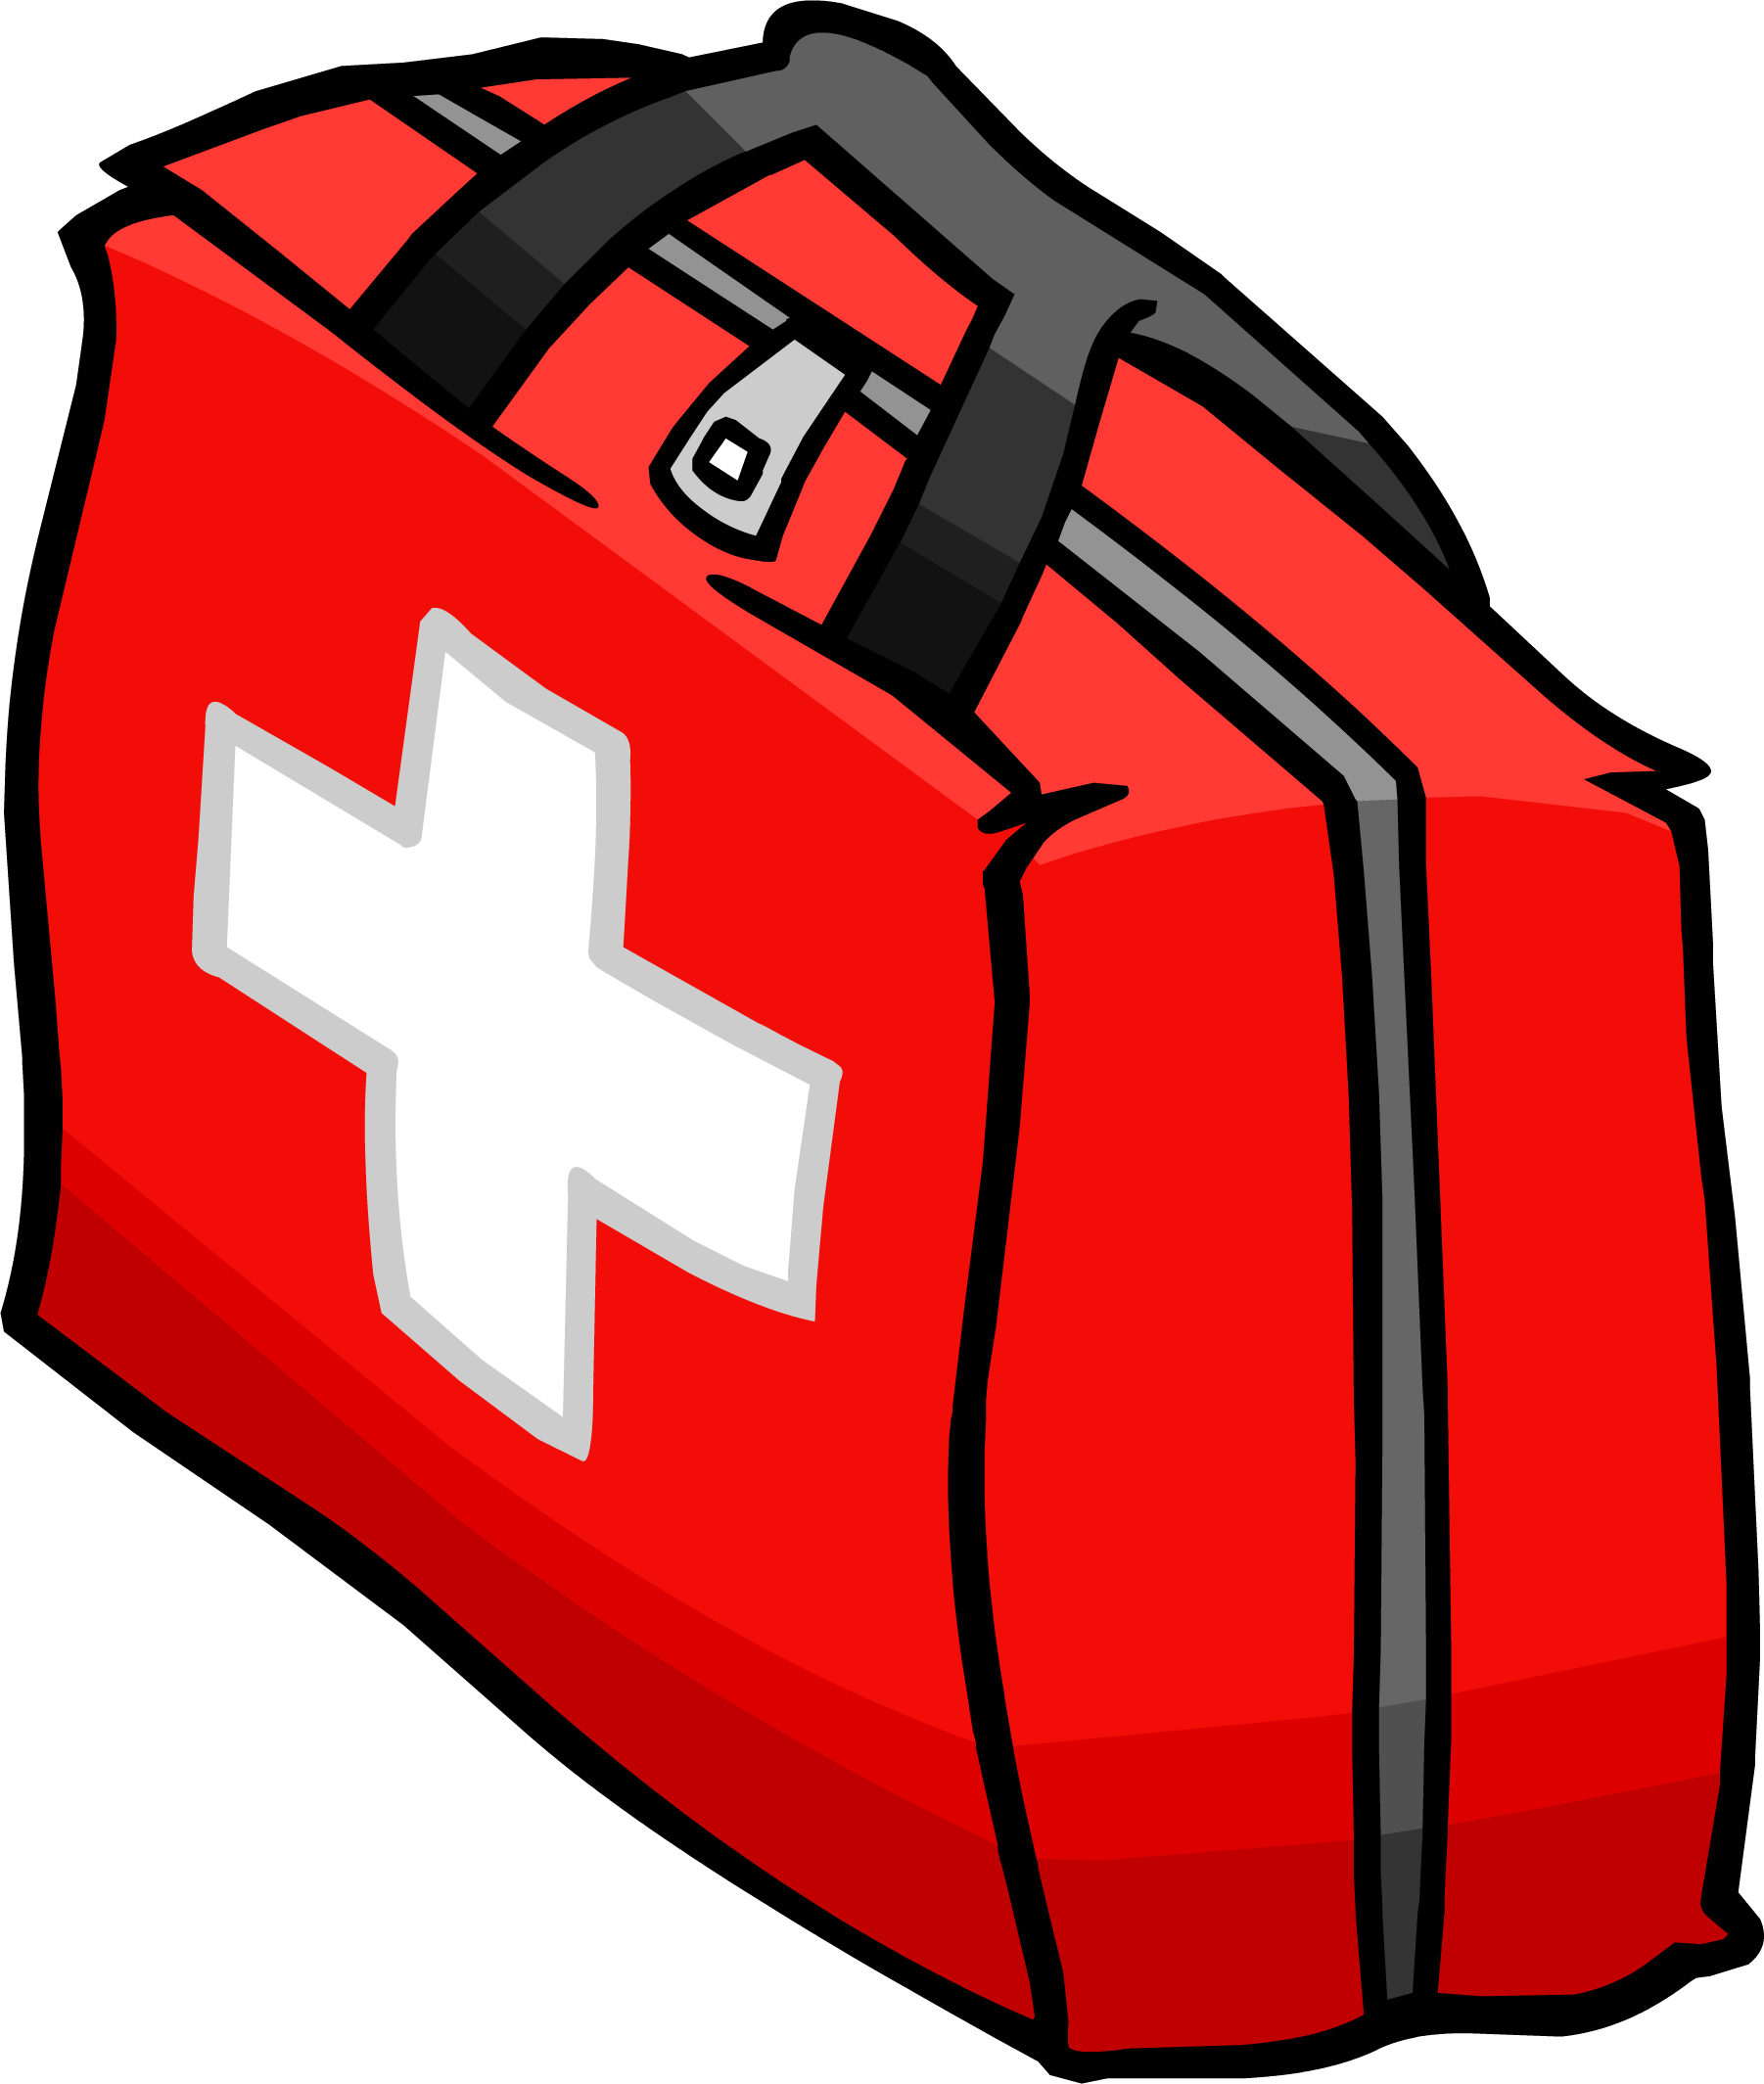 Cross clipart free download banner transparent download Doctor Bag Clipart | Free download best Doctor Bag Clipart on ... banner transparent download